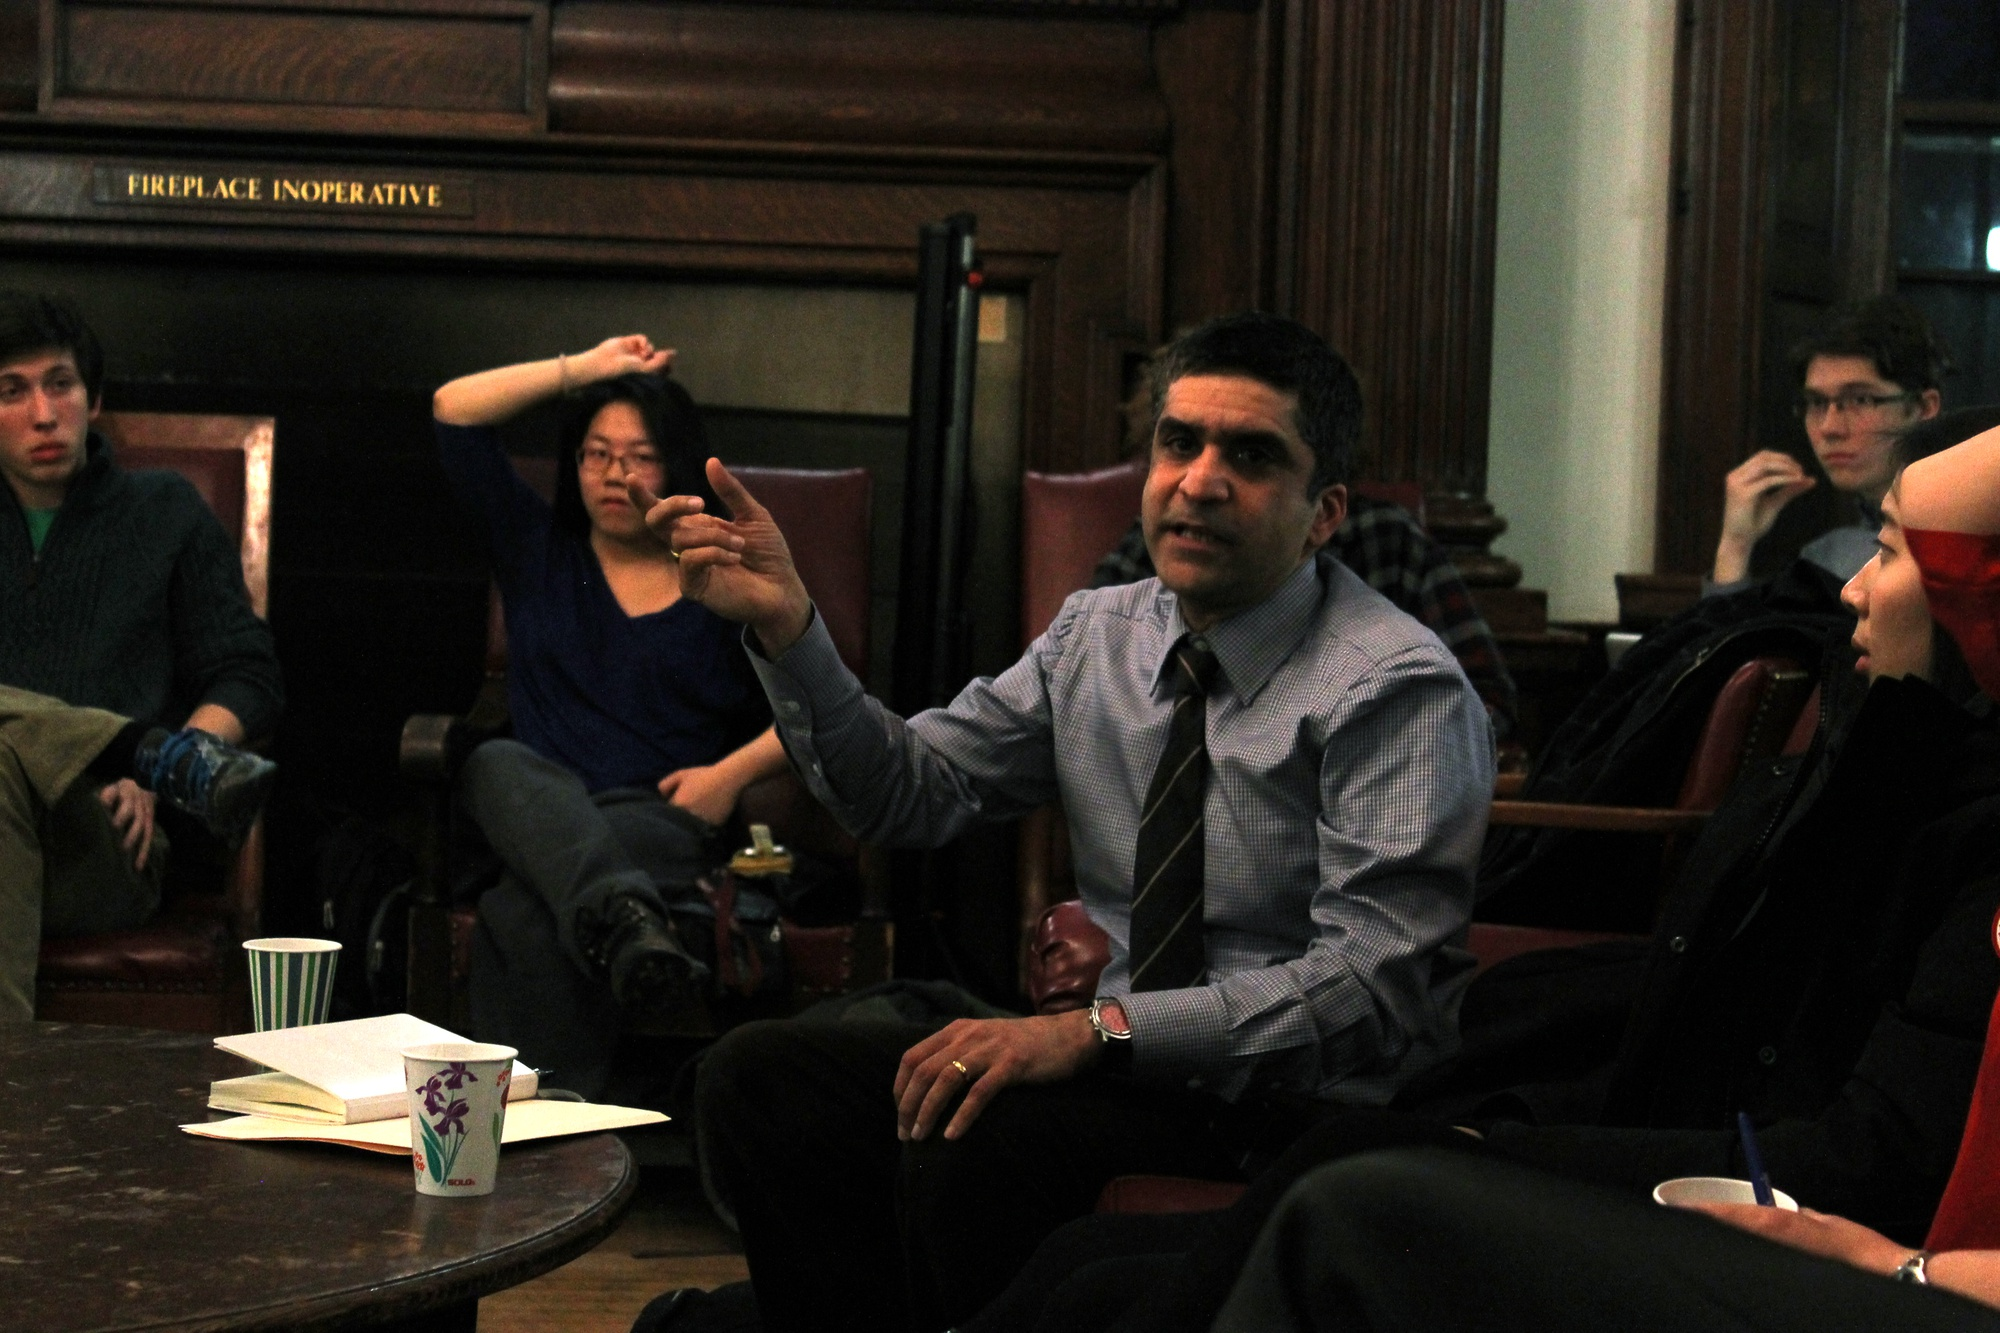 Dean of the College Rakesh Khurana leads a discussion with students about balancing academics and extracurriculars at a town hall in the Phillips Brooks House Parlor on Wednesday evening.